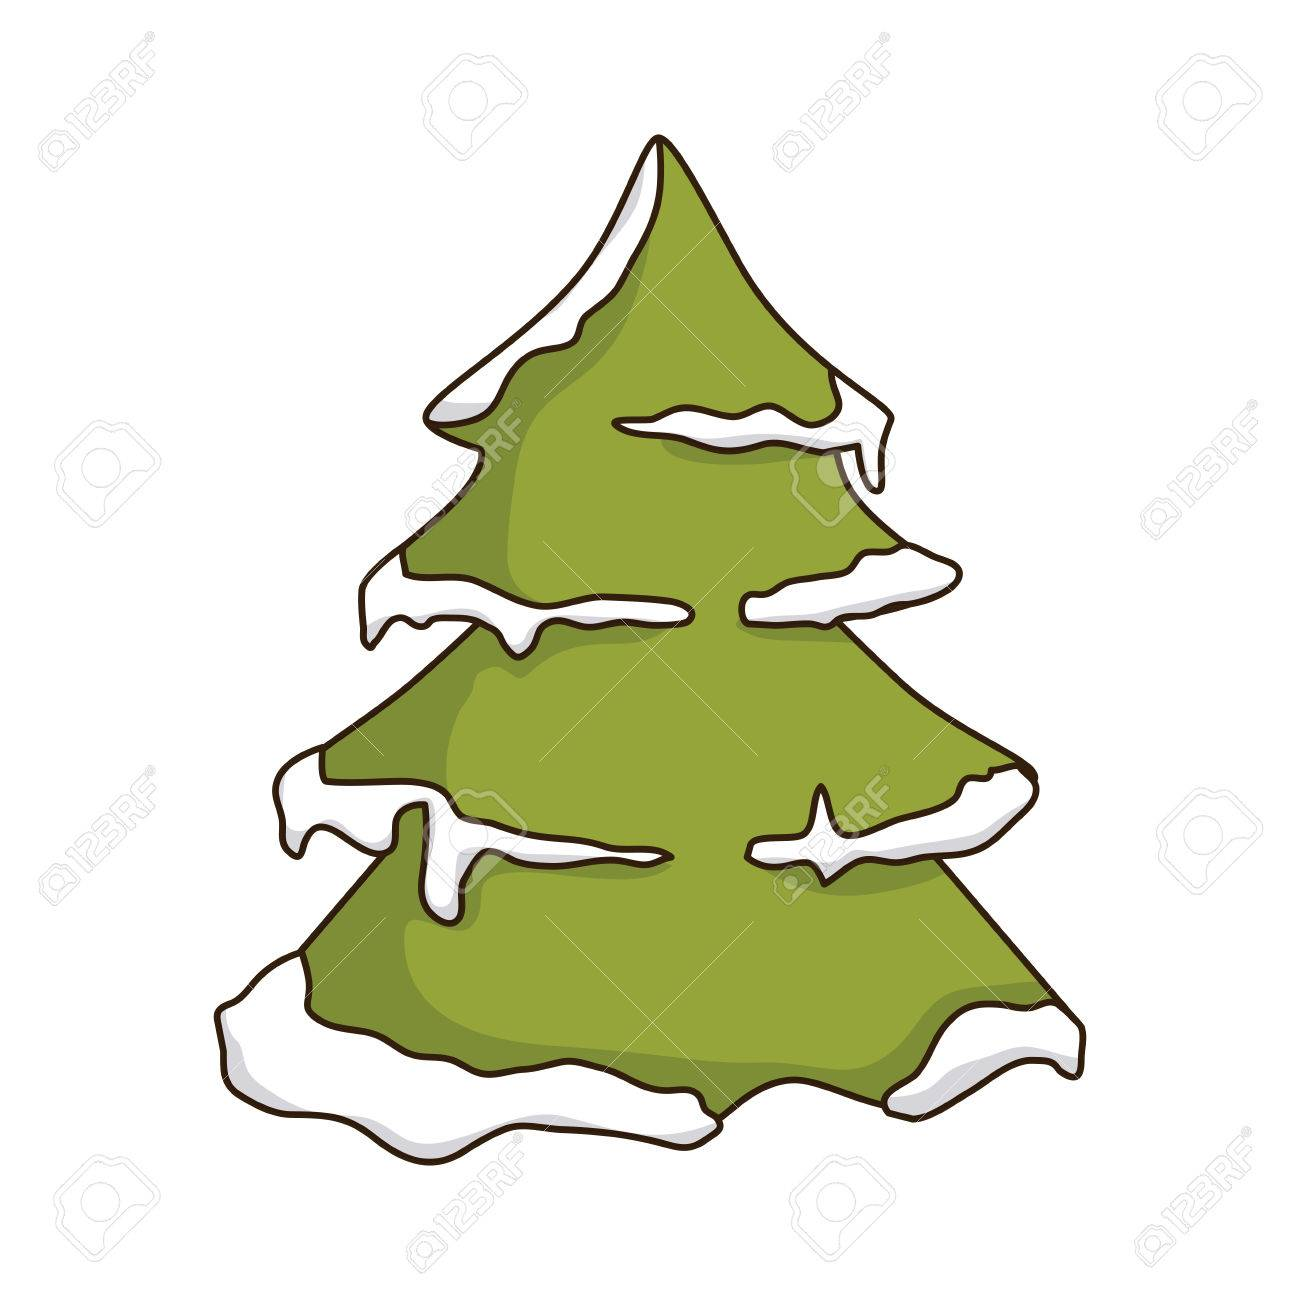 Tall Christmas Tree Clipart.Green Pine Tall Tree With Snow Winter Season Nature Vector